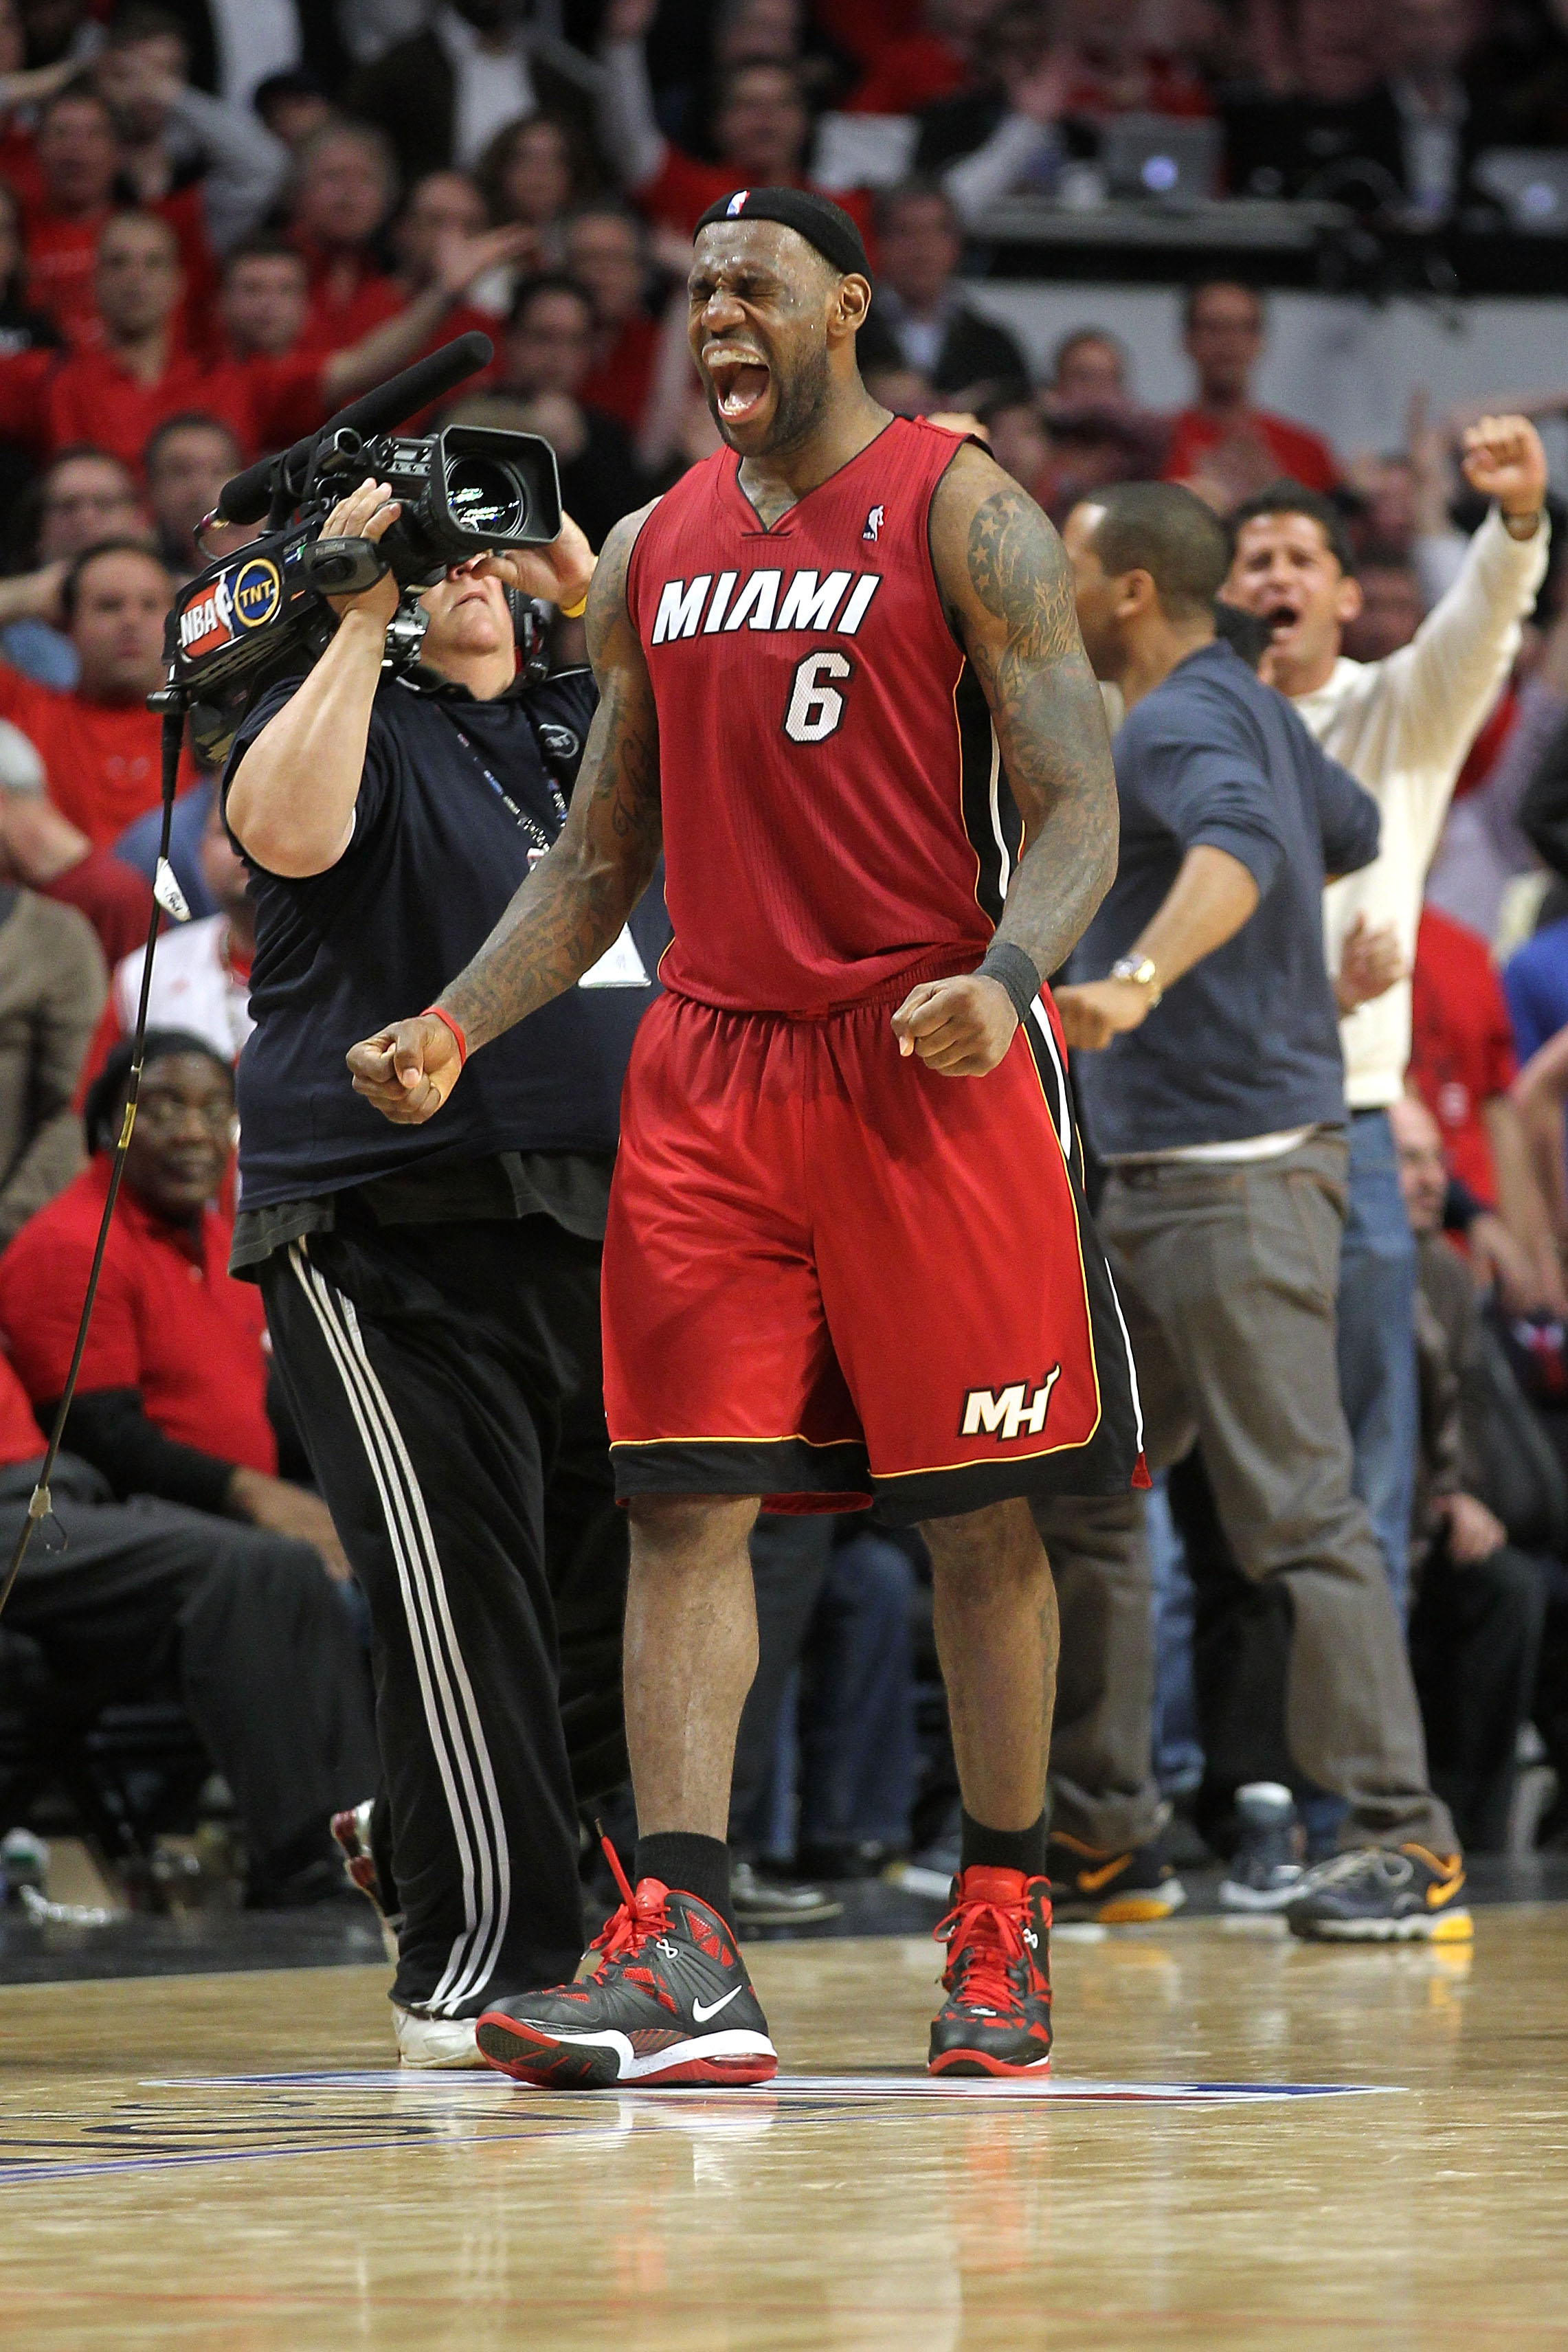 CHICAGO, IL - MAY 26: LeBron James #6 of the Miami Heat celebrates after the Heat won 83-80 against the Chicago Bulls in Game Five of the Eastern Conference Finals during the 2011 NBA Playoffs on May 26, 2011 at the United Center in Chicago, Illinois. NOT